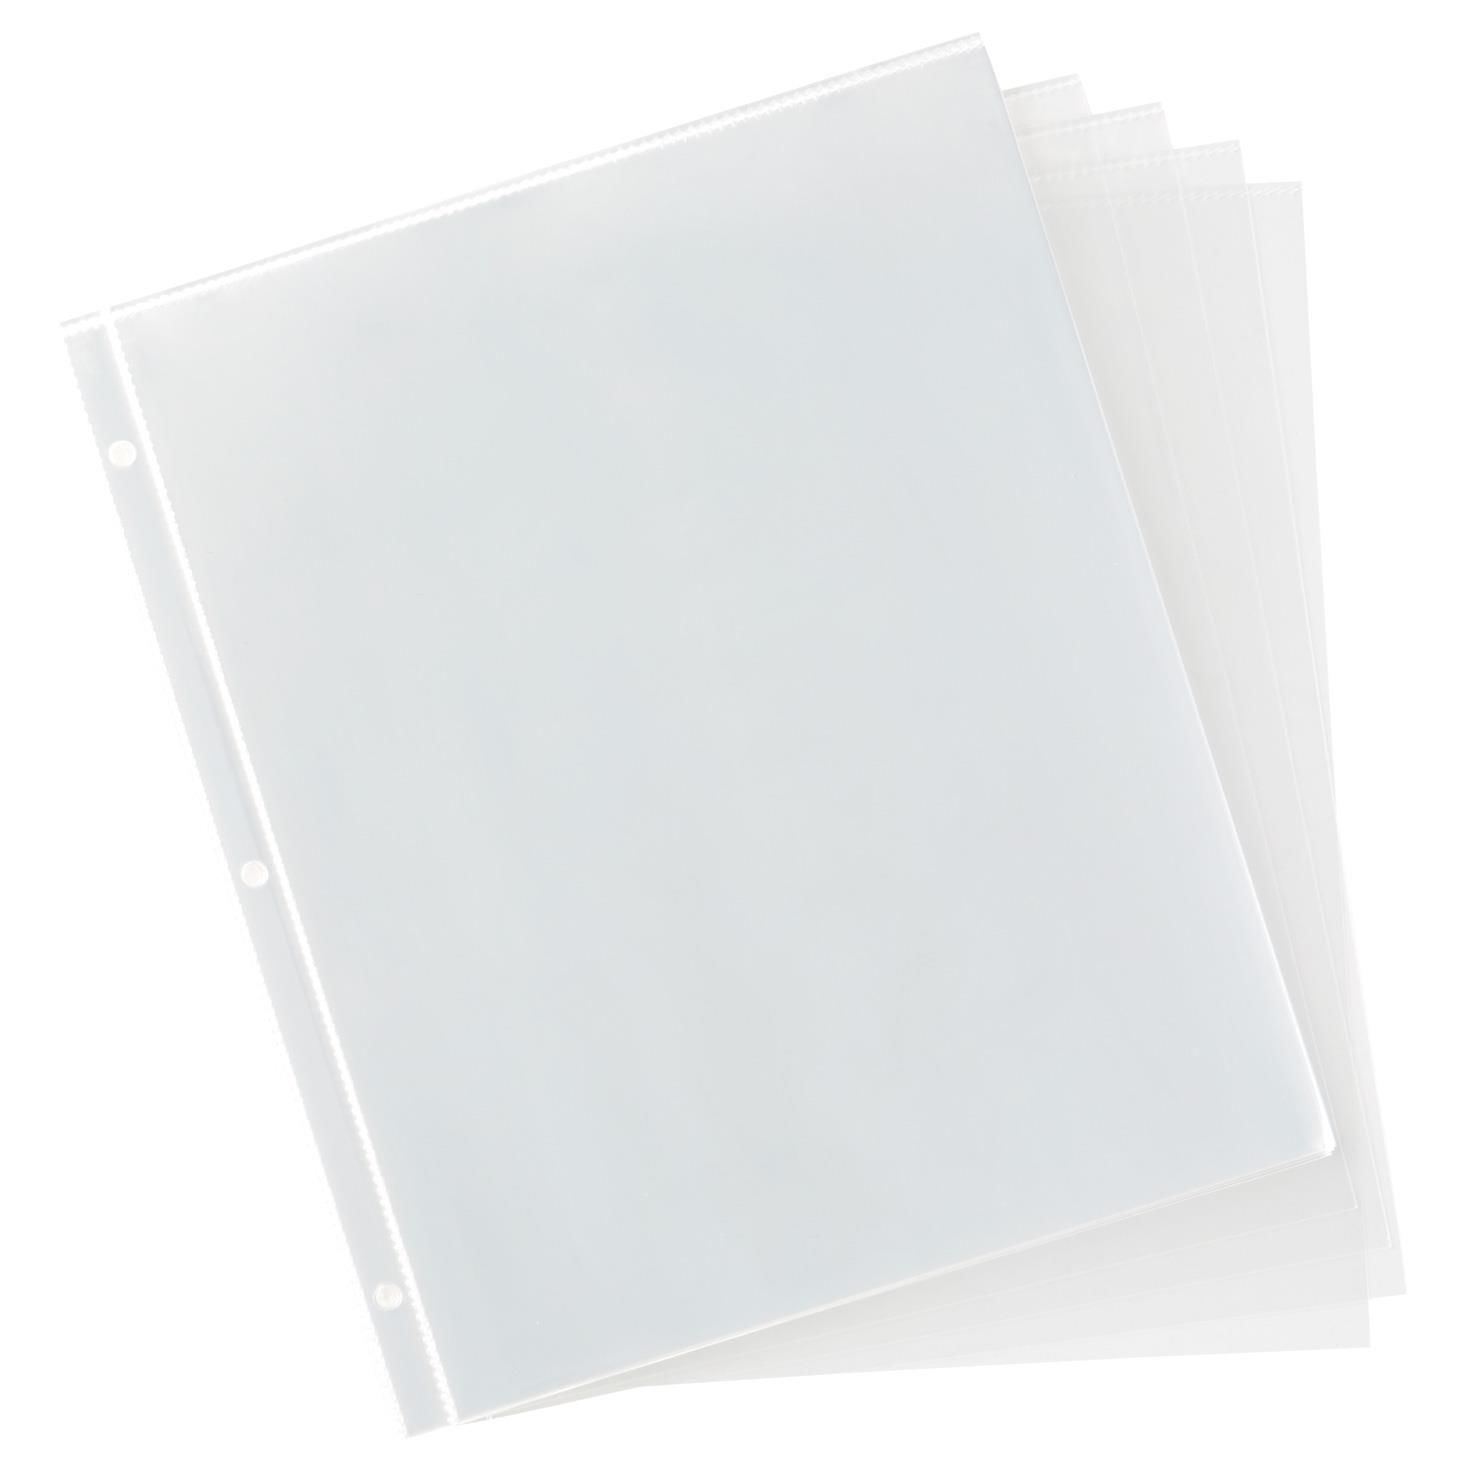 8 5 x 11 3 ring binder refill with white inserts